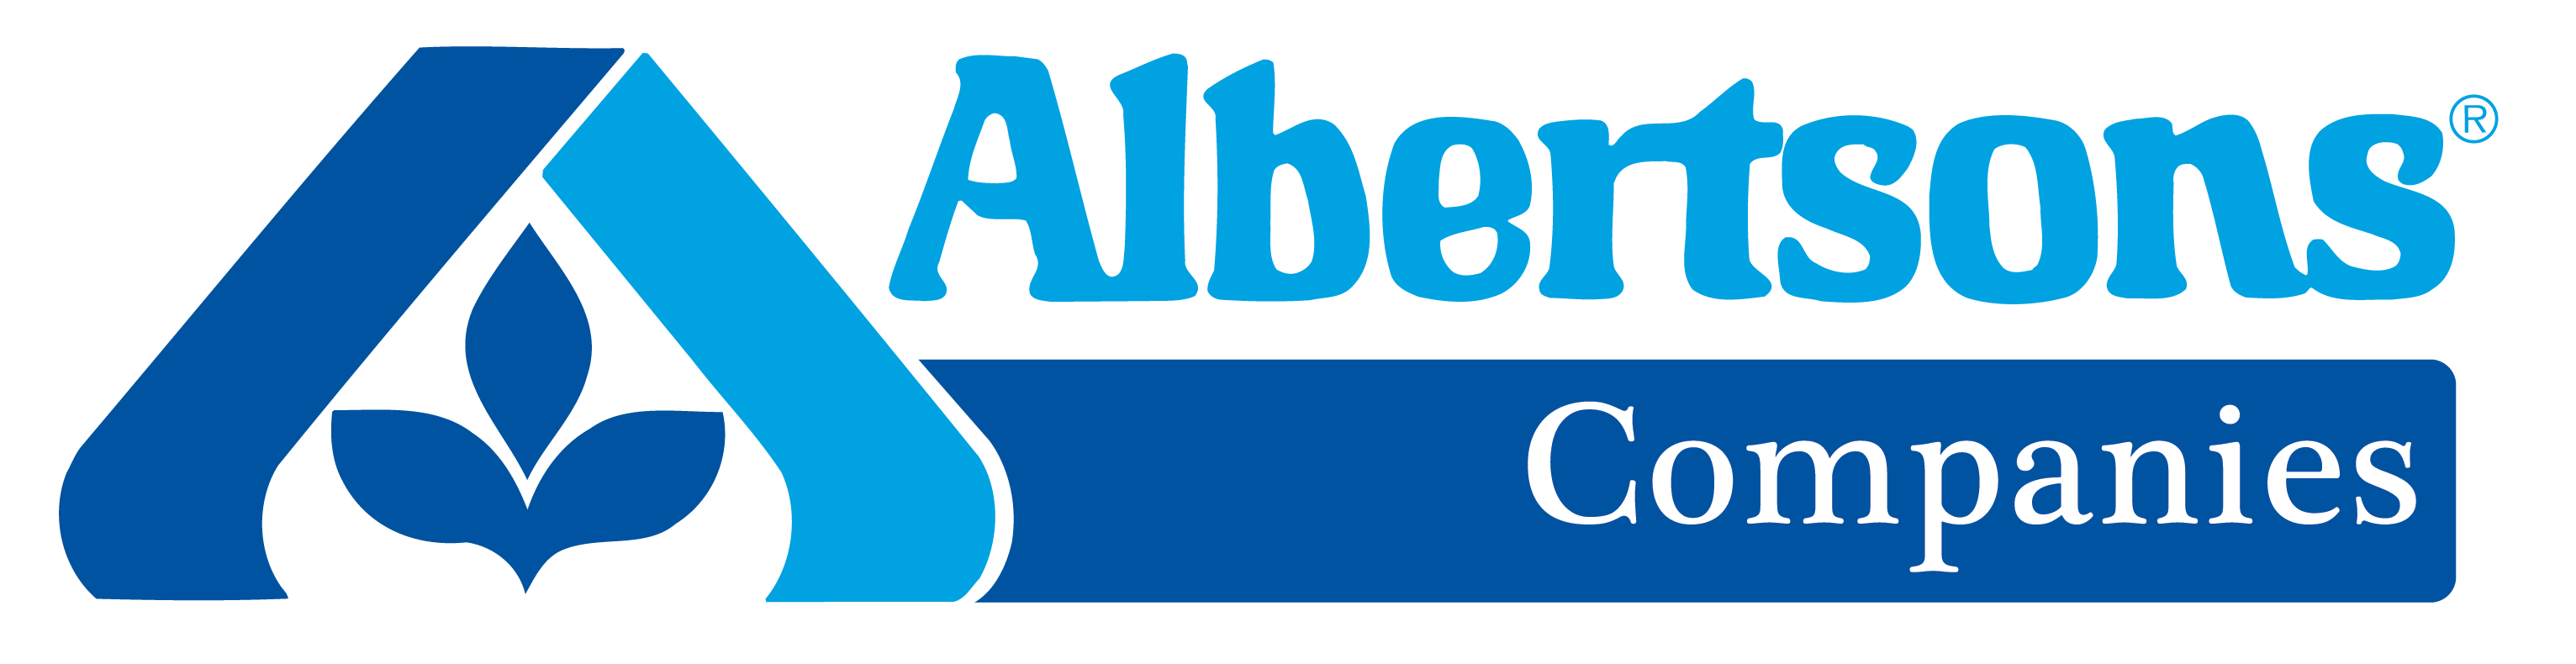 The Albertsons Companies Logo